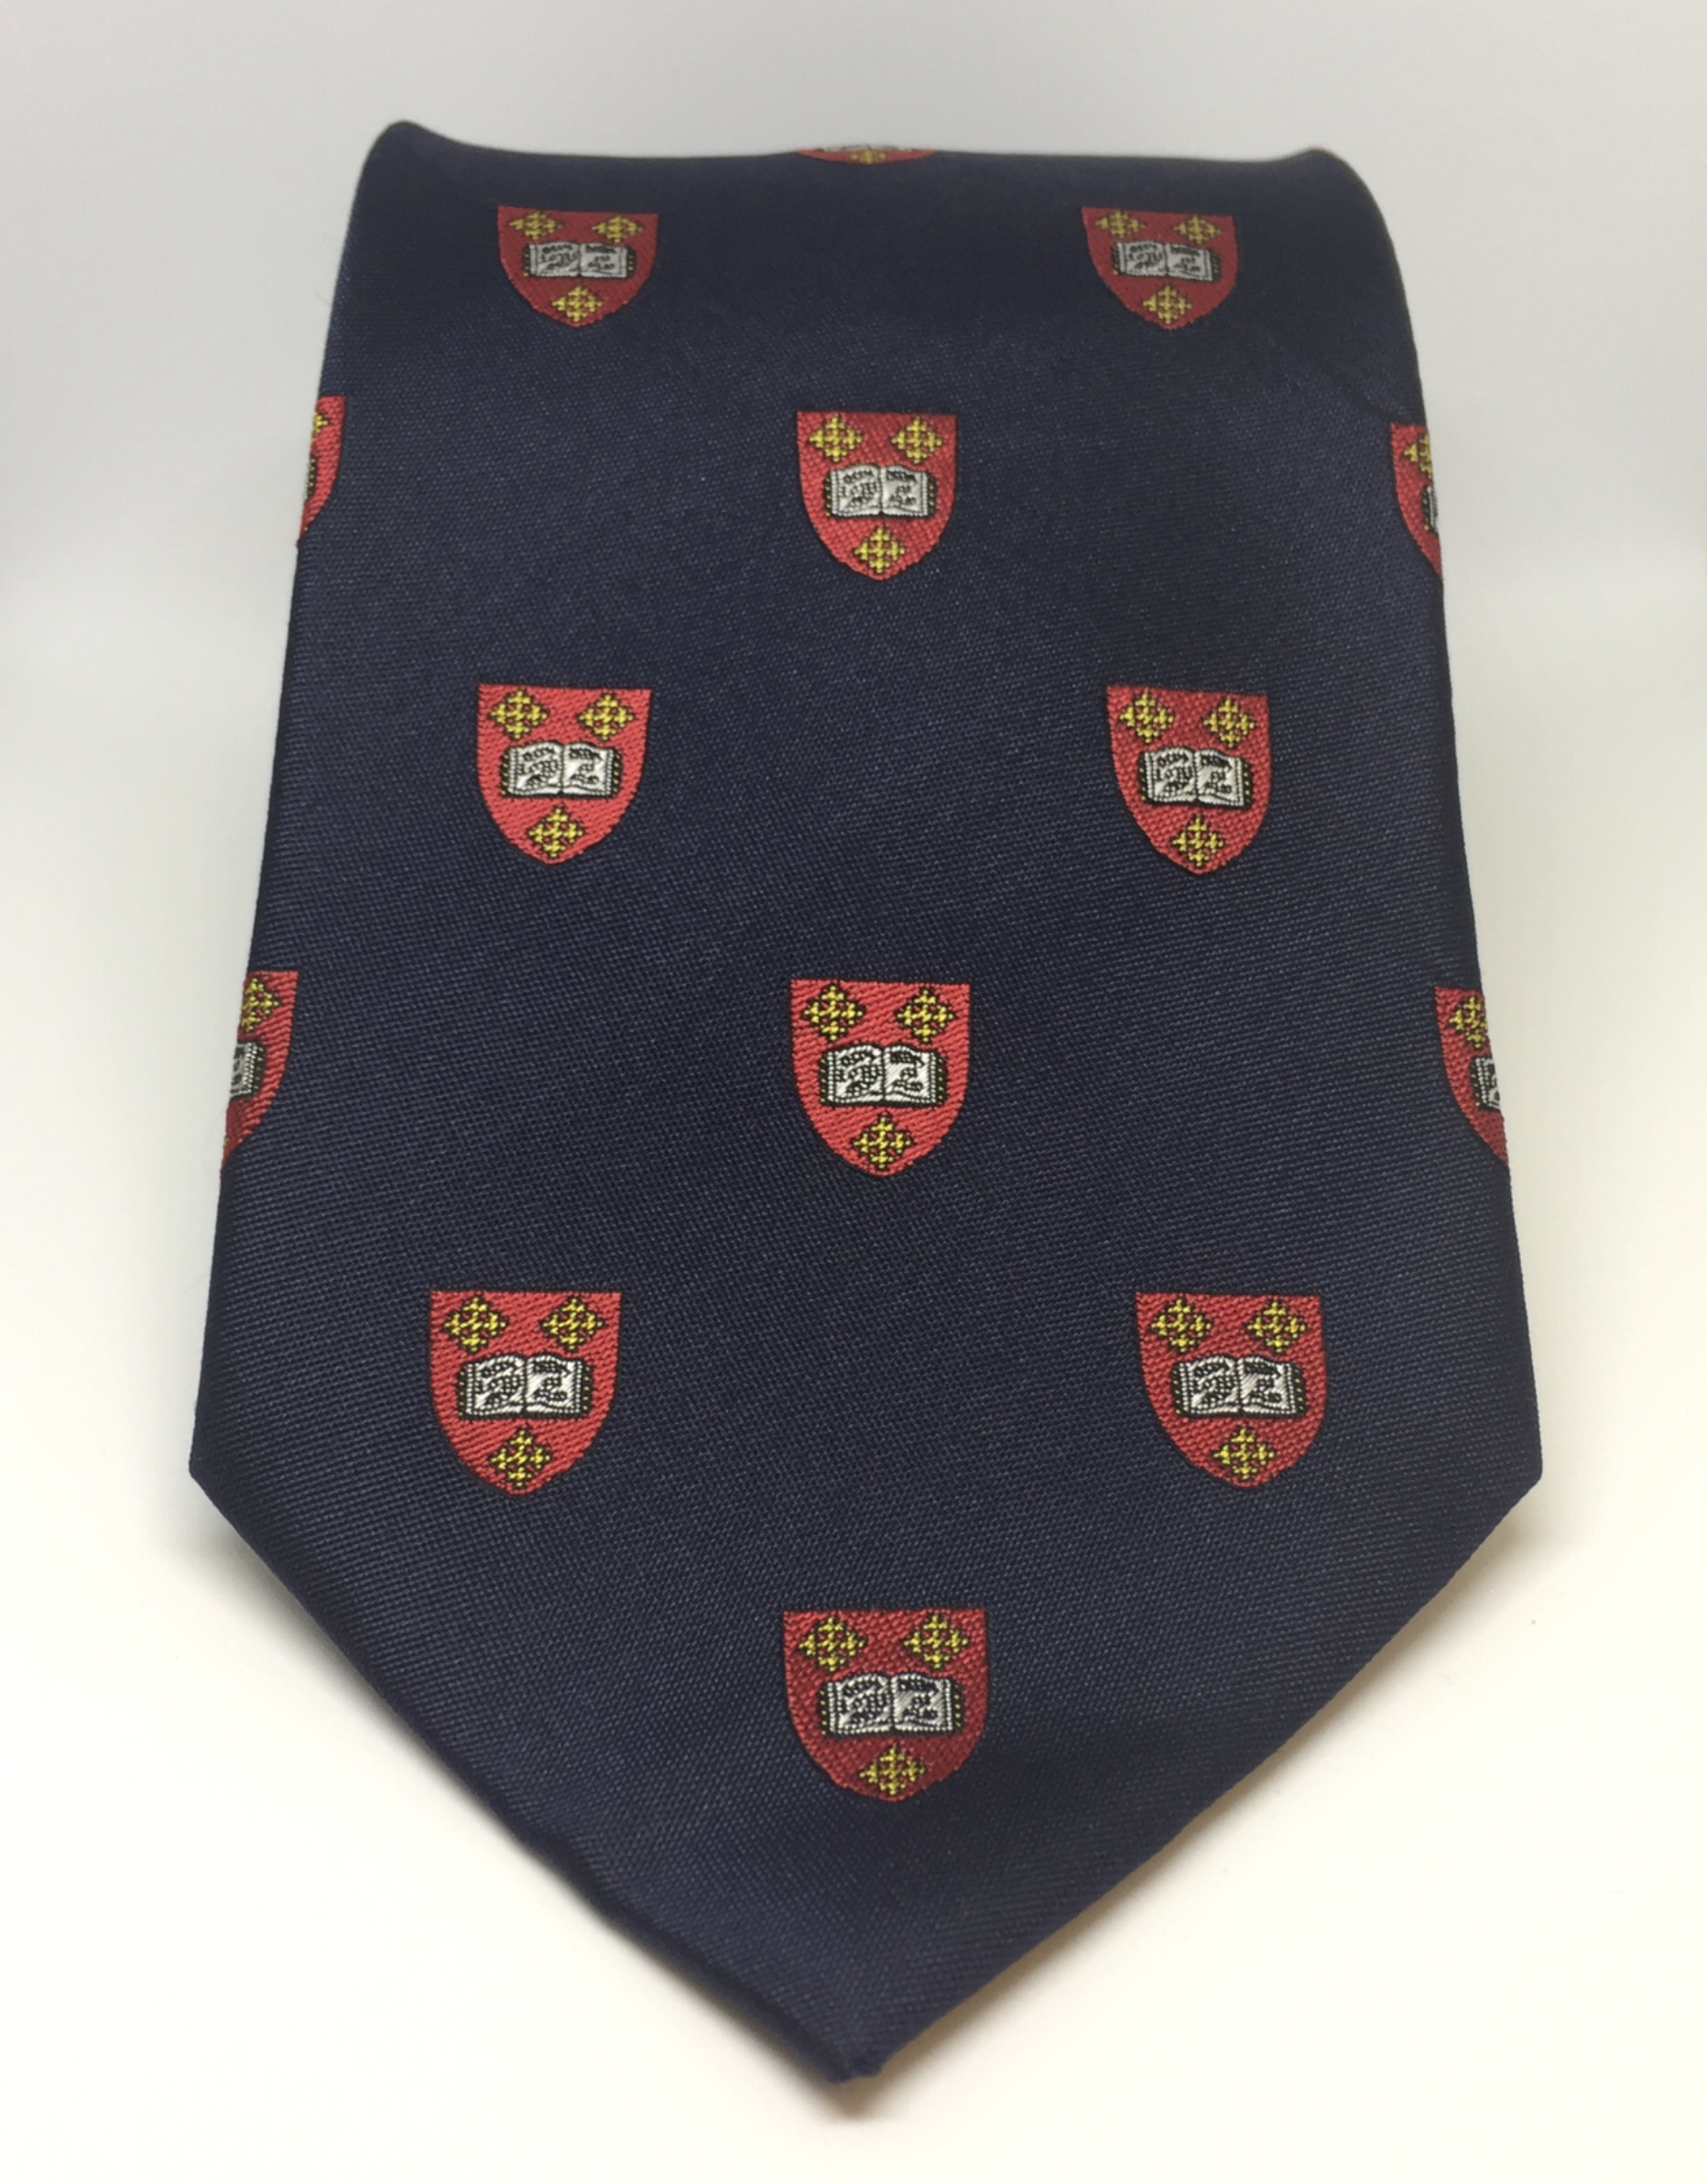 a Mansfield College silk tie with repeat crest pattern.